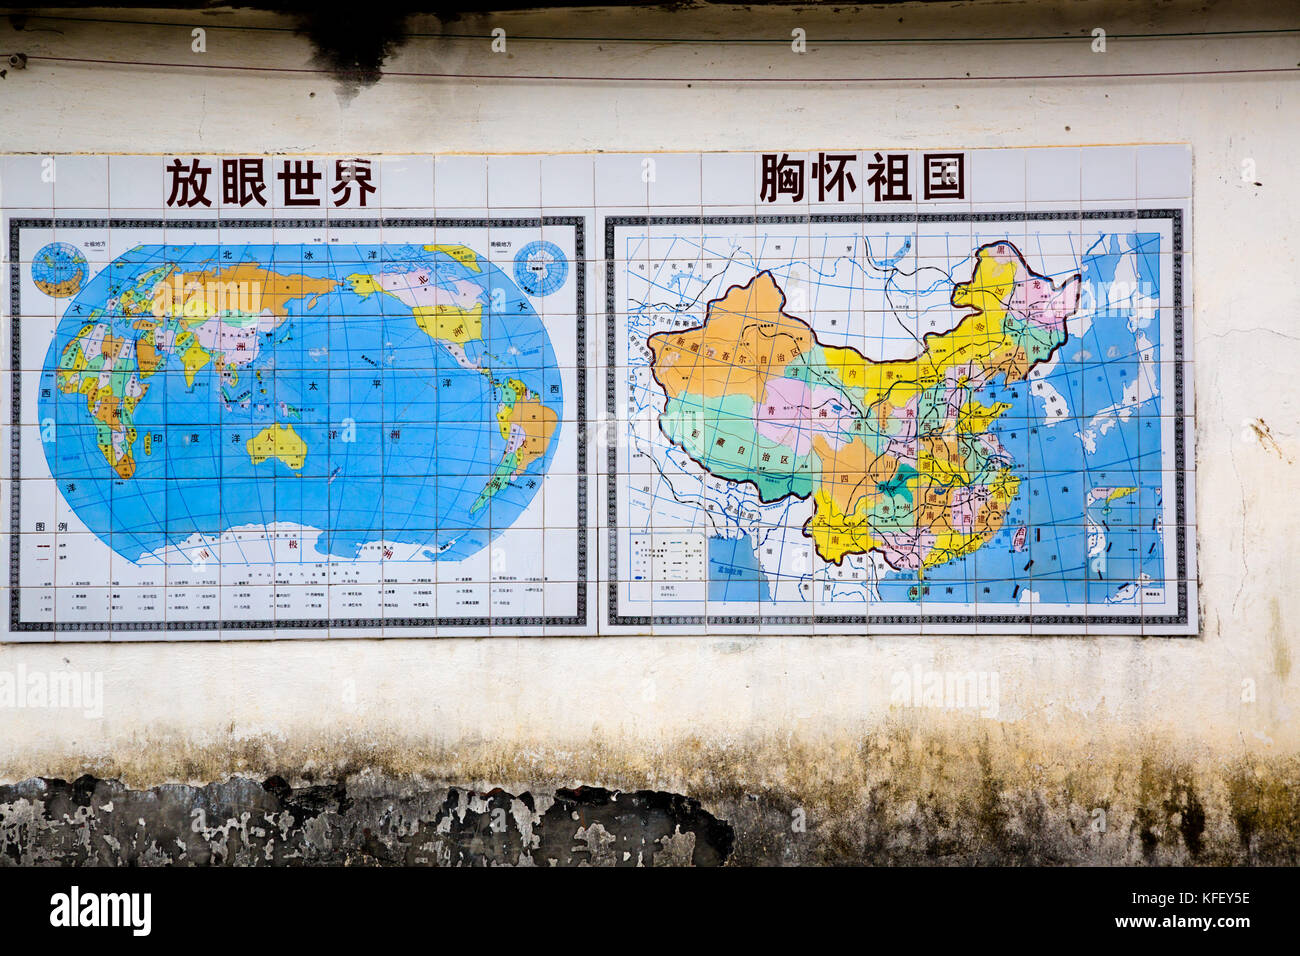 School wall map stock photos school wall map stock images alamy atlas of the world and a map of china on the wall in the courtyard of gumiabroncs Gallery